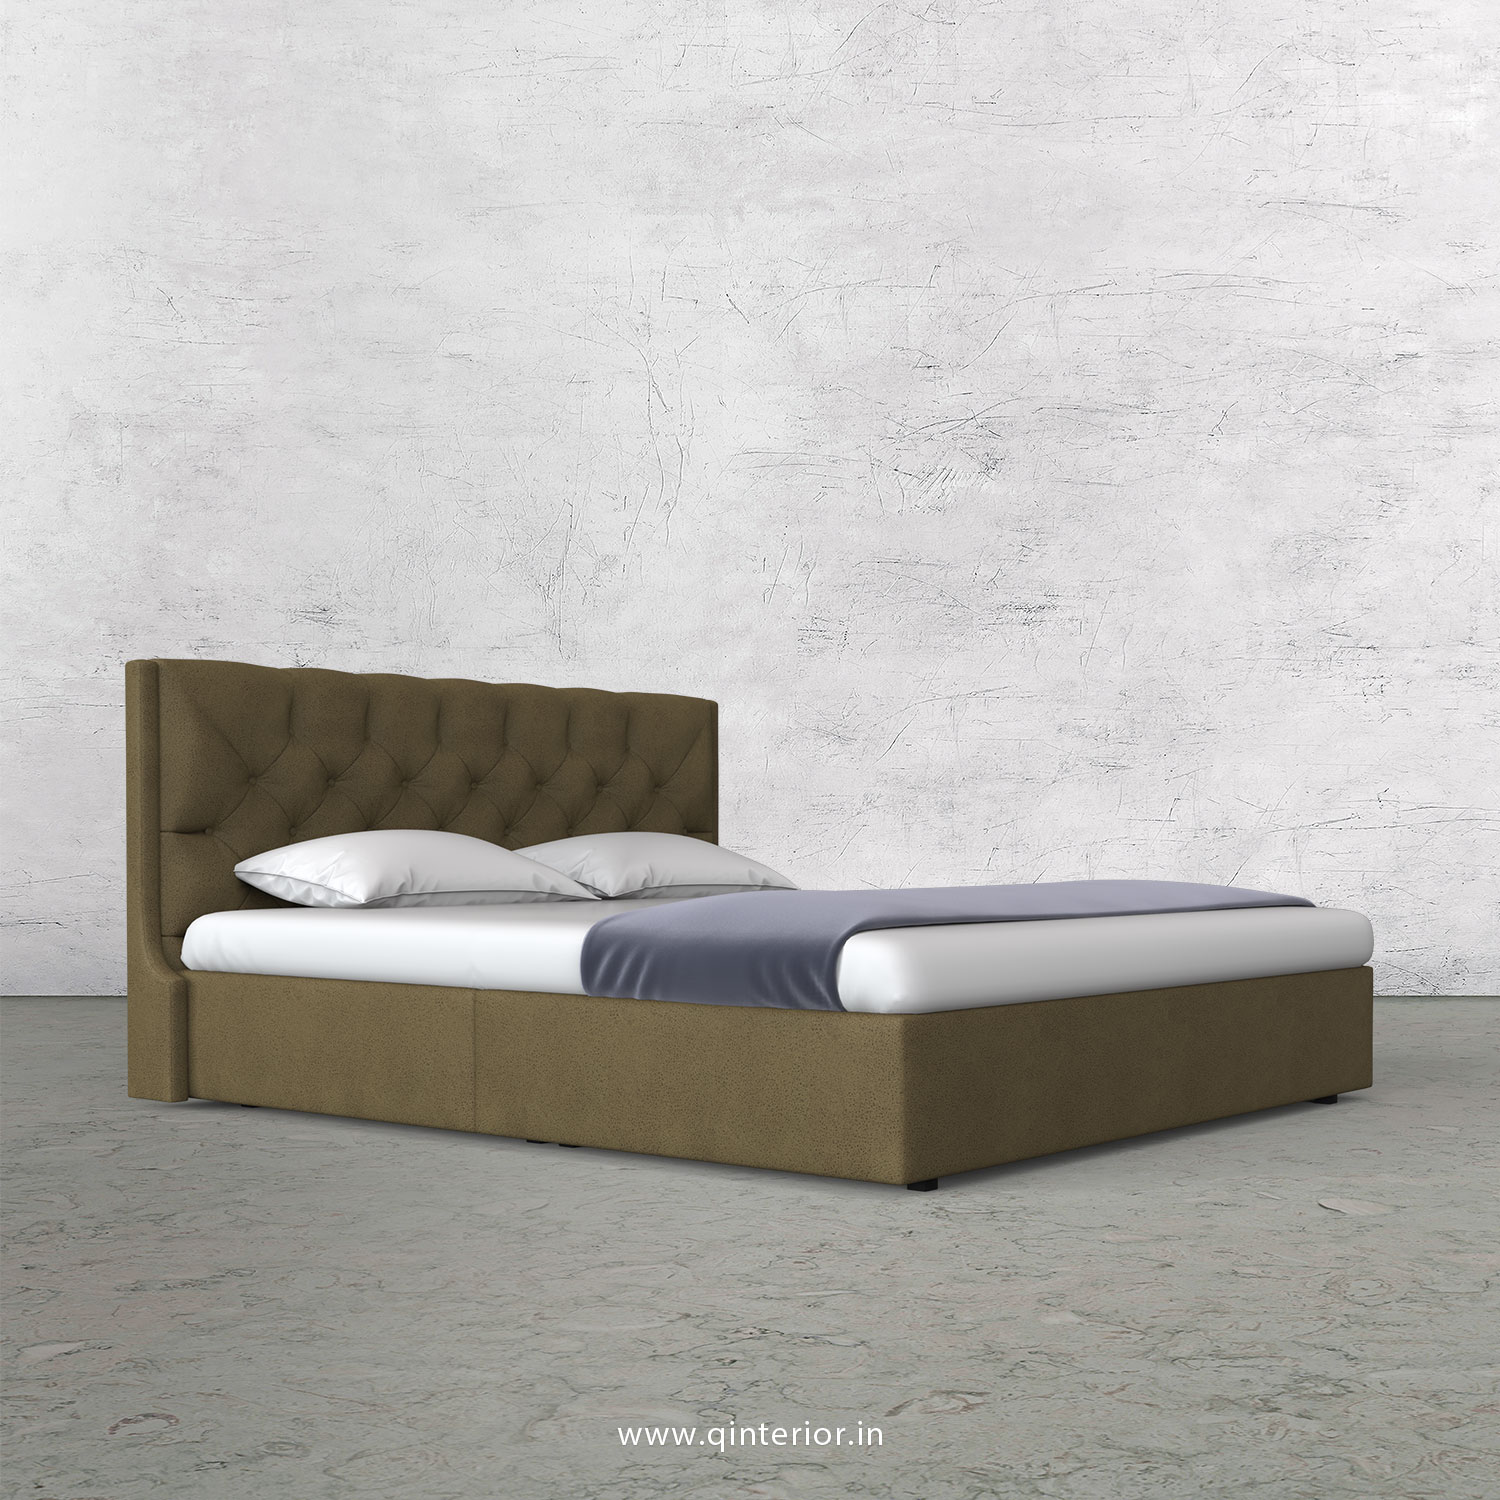 Scorpius King Size Bed in Fab Leather Fabric - KBD009 FL01